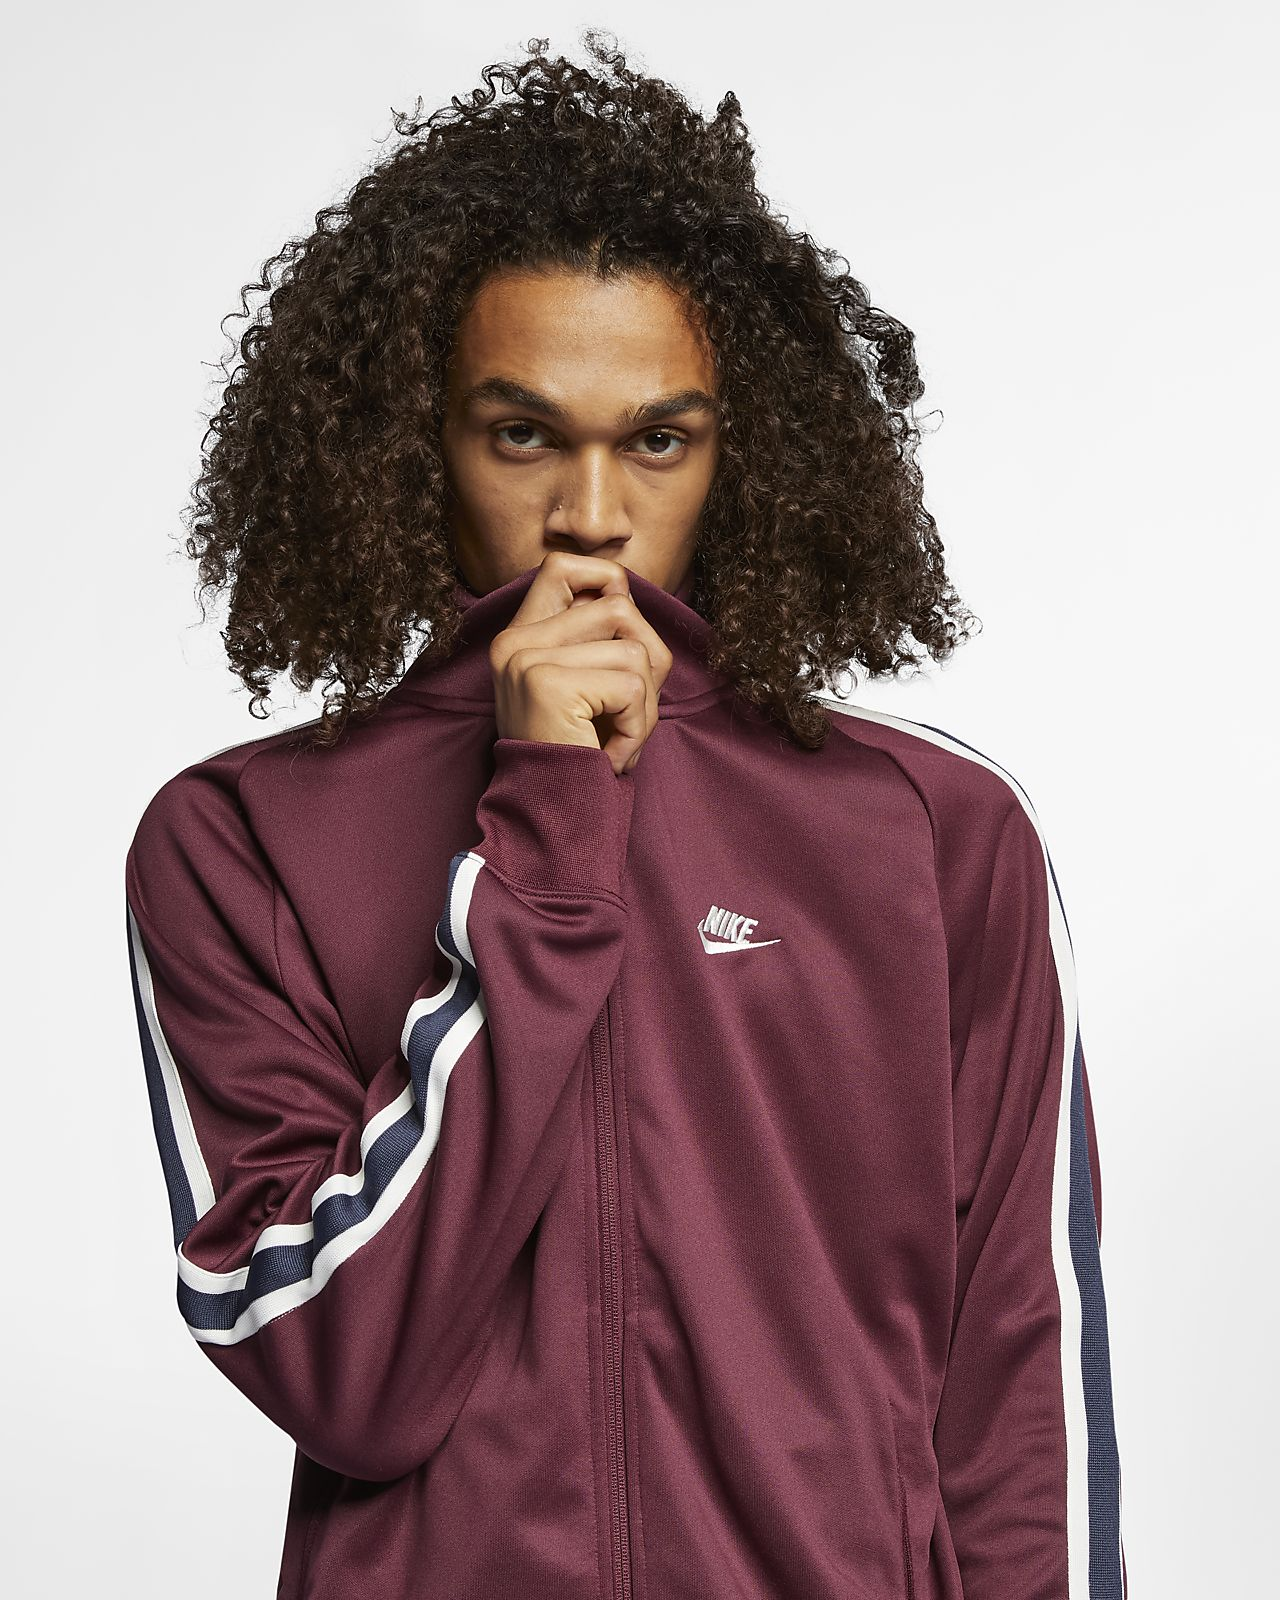 Nike Sportswear N98 Men's Knit Warm-Up Jacket